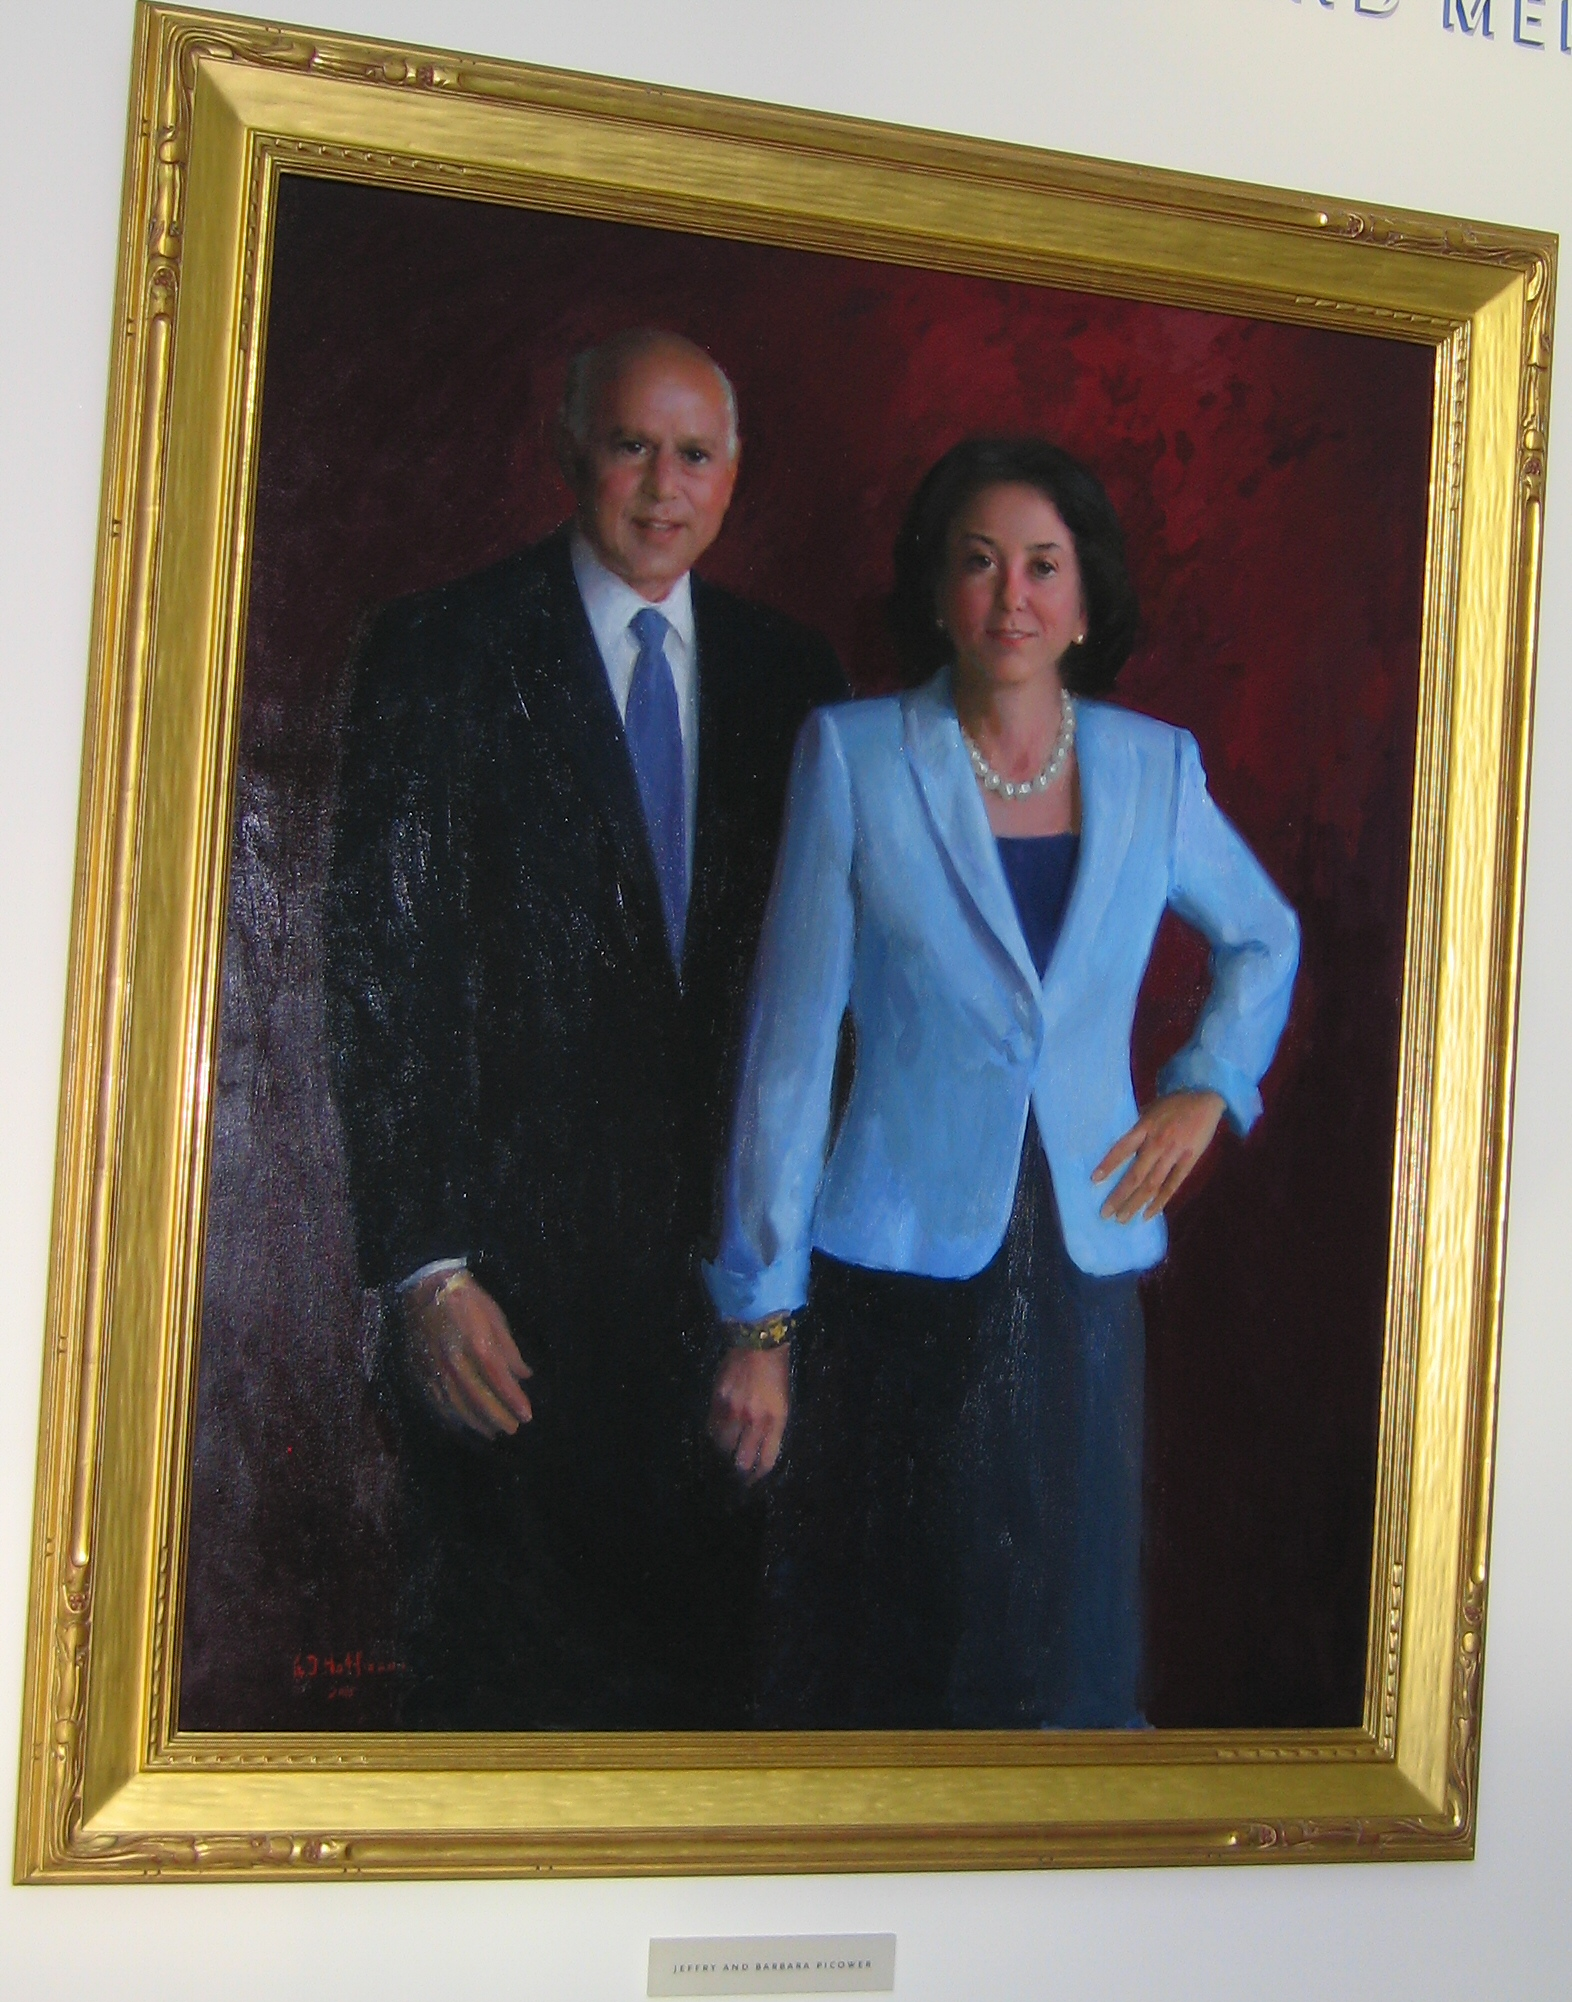 portrait of Barbara and Jeffry Picower hangs in MIT building lobby